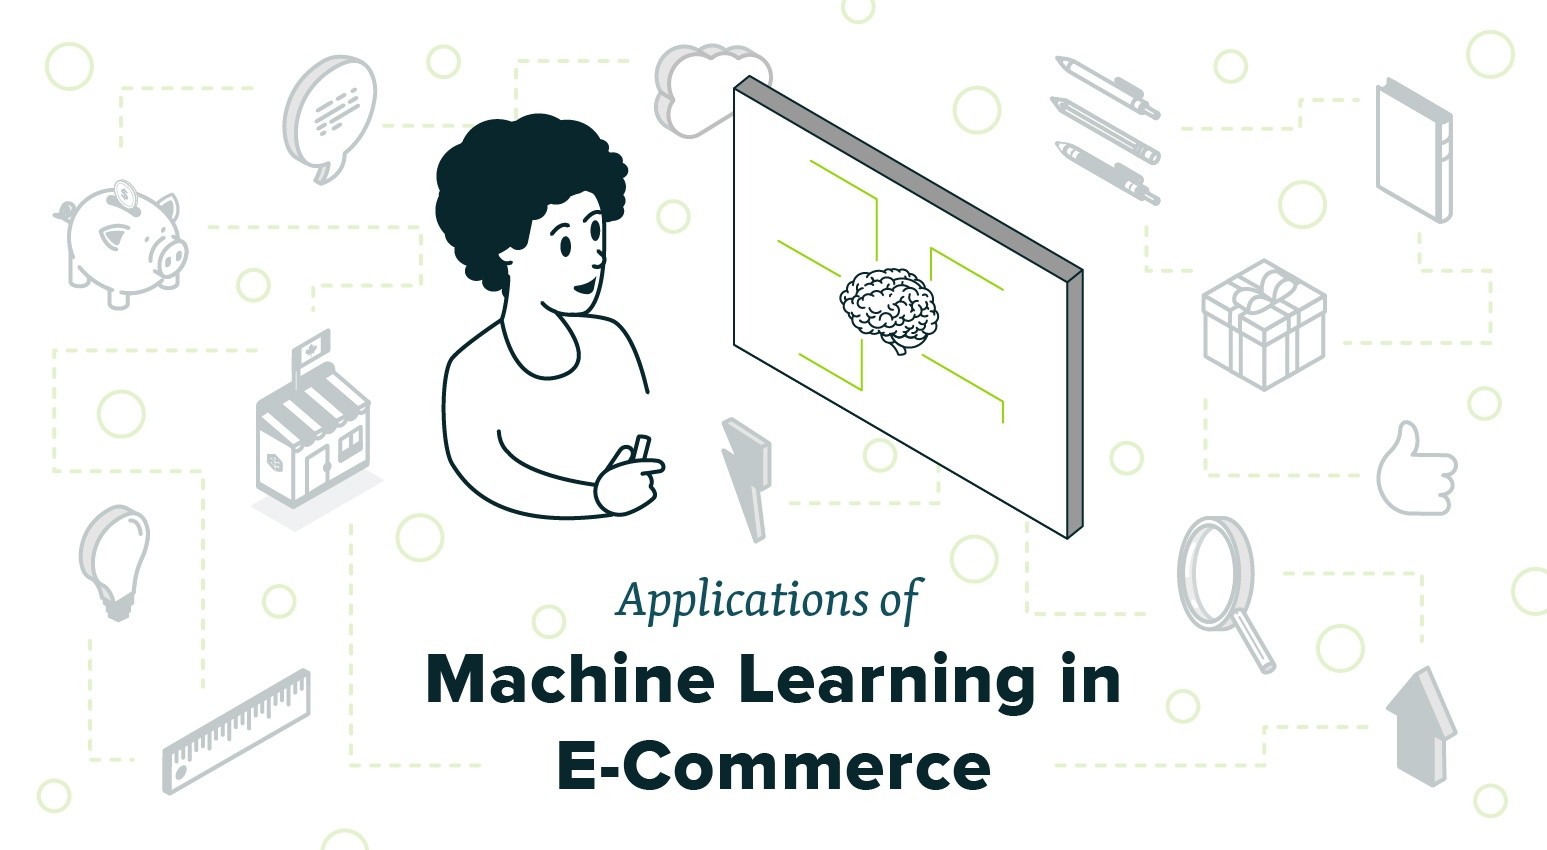 7 Powerful Applications of Machine Learning in E-Commerce